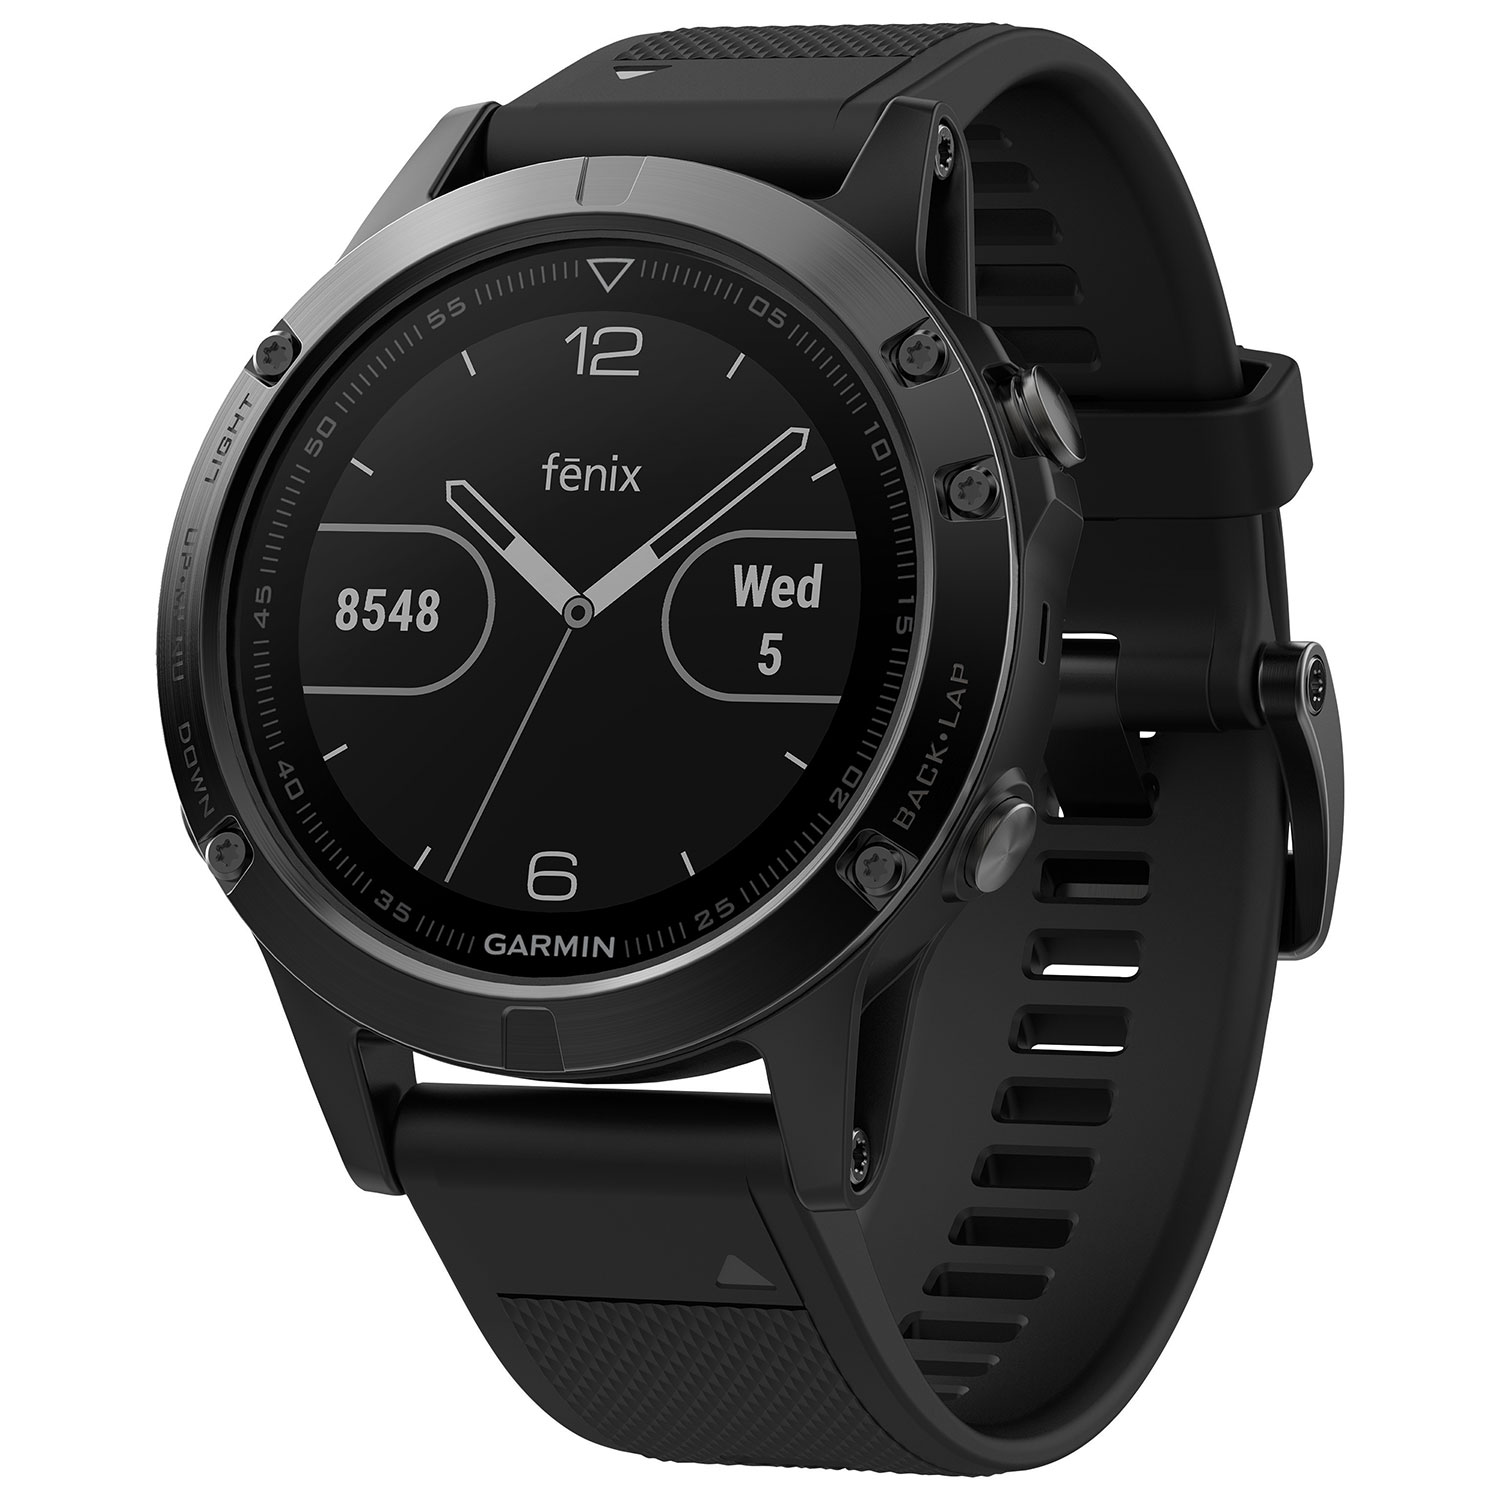 golfalot launch equipment news watches golfbuddy watch wtx gps